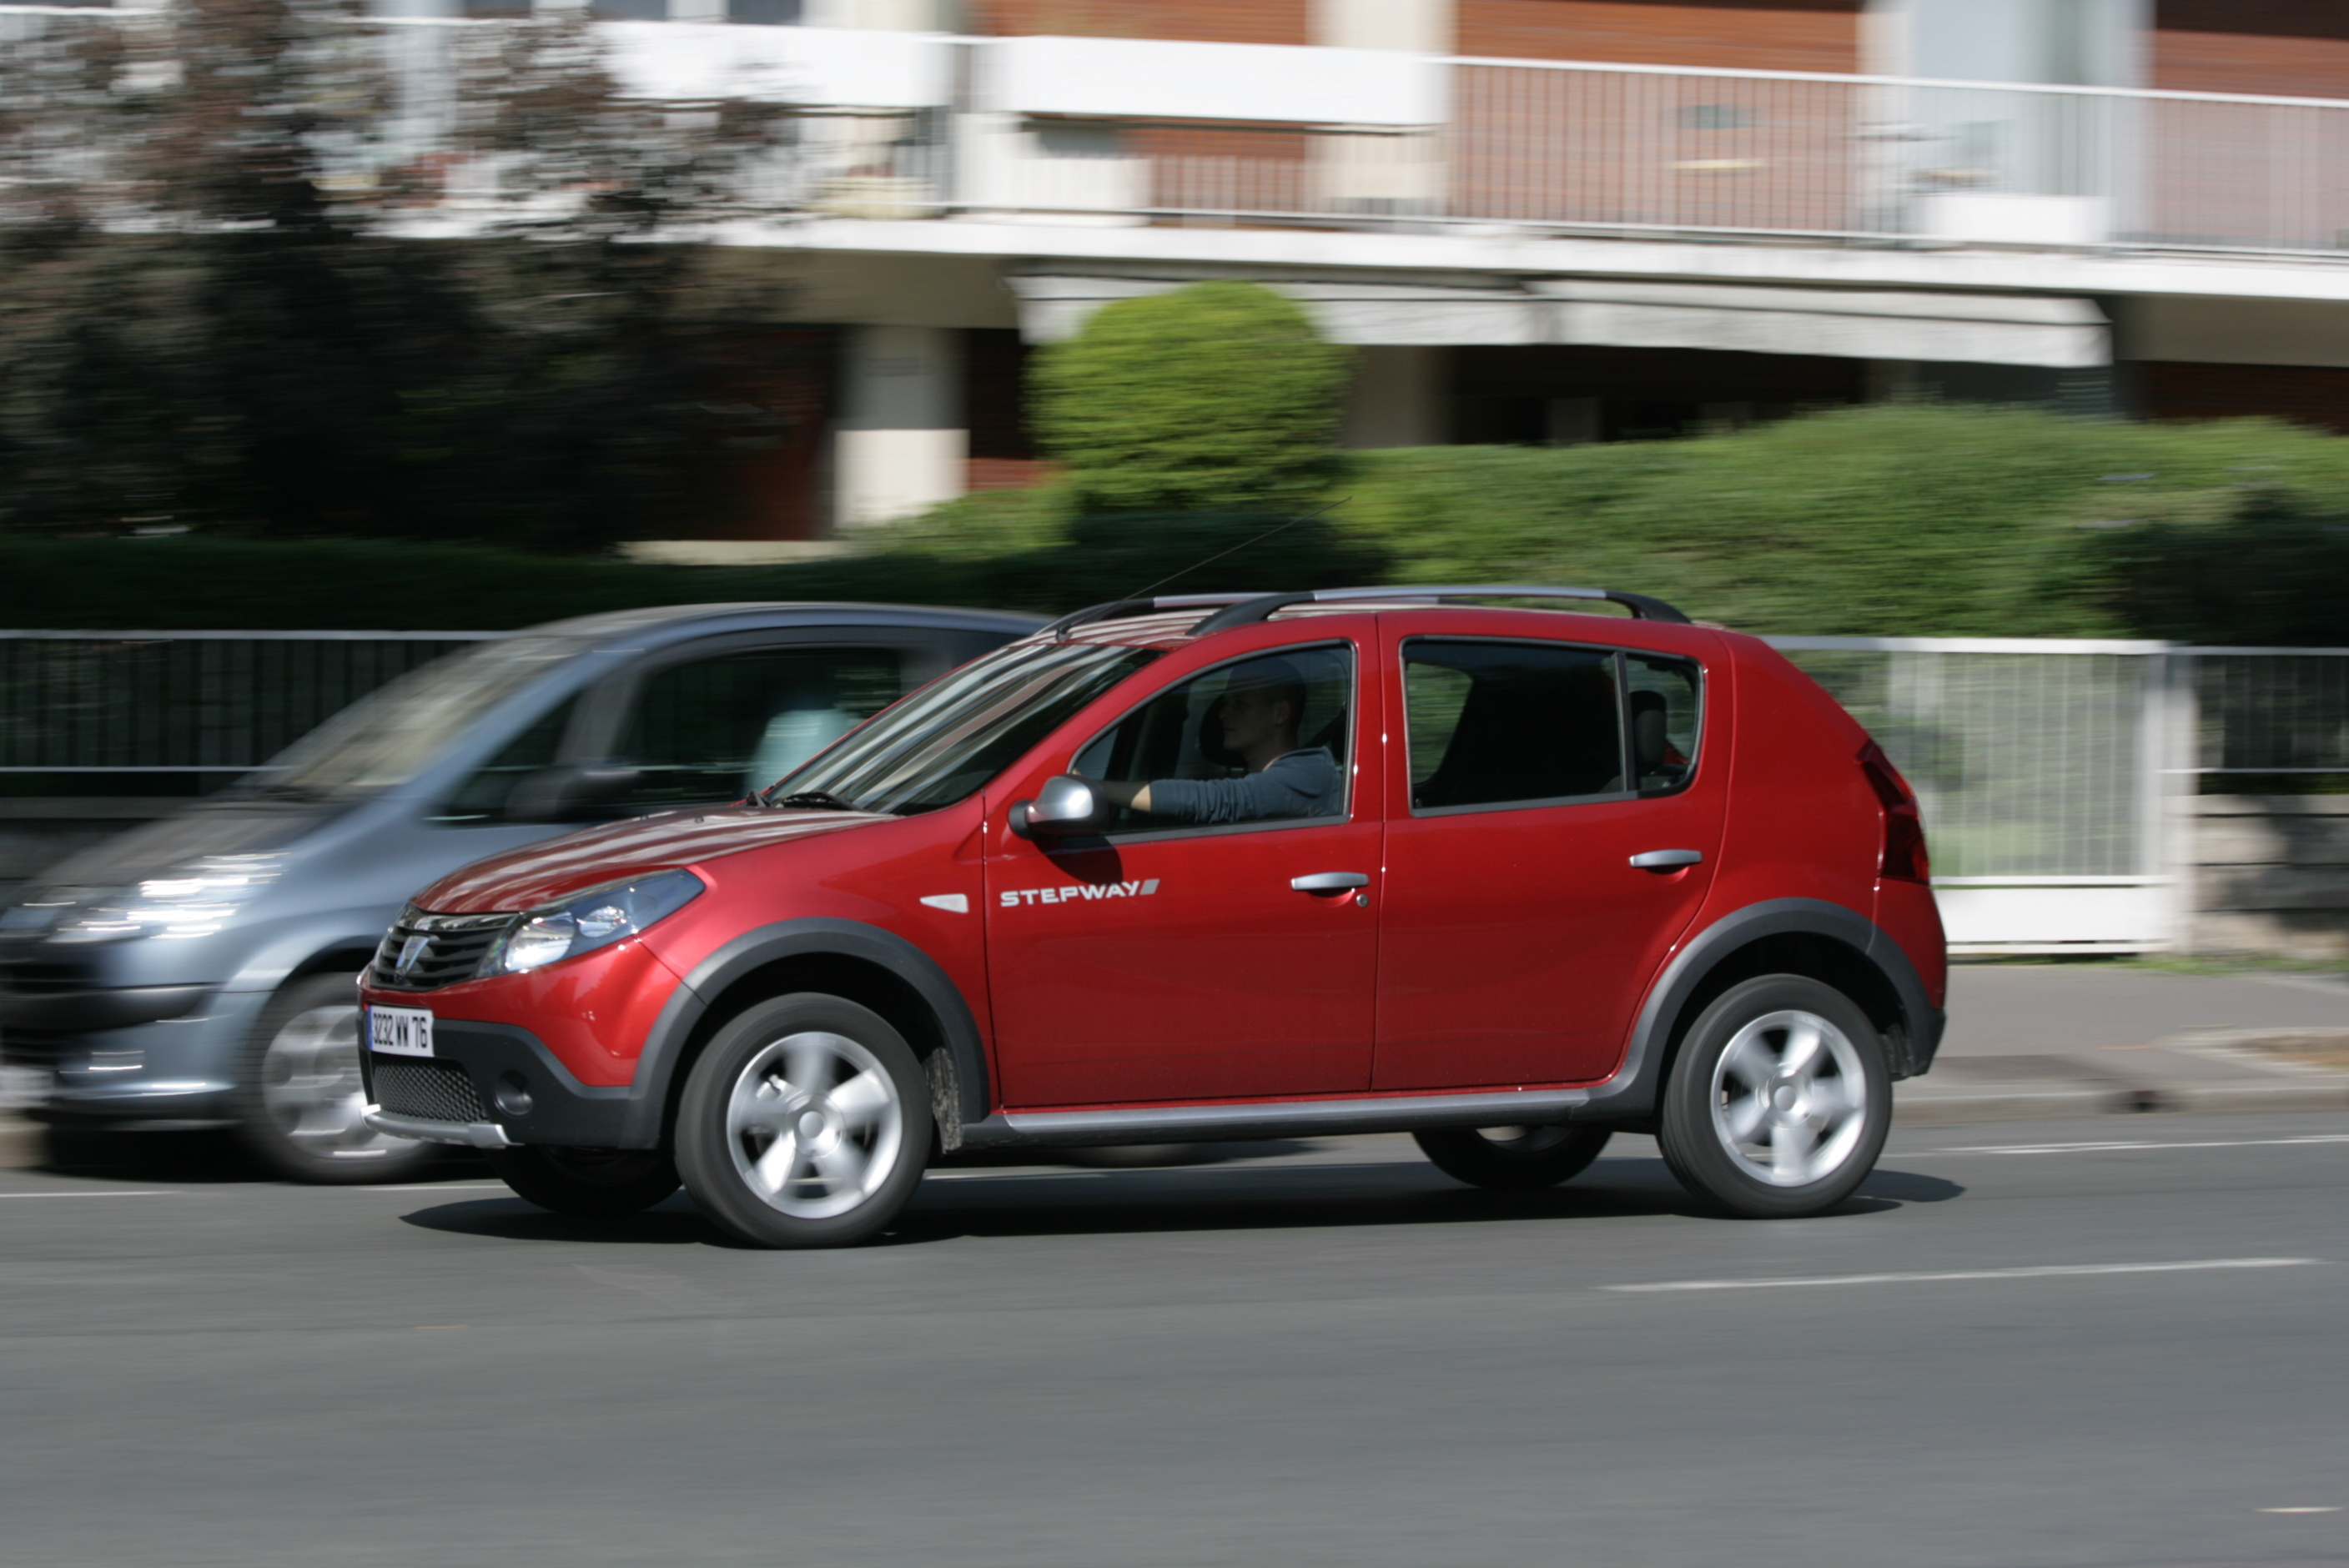 essai dacia sandero stepway l 39 essentiel. Black Bedroom Furniture Sets. Home Design Ideas